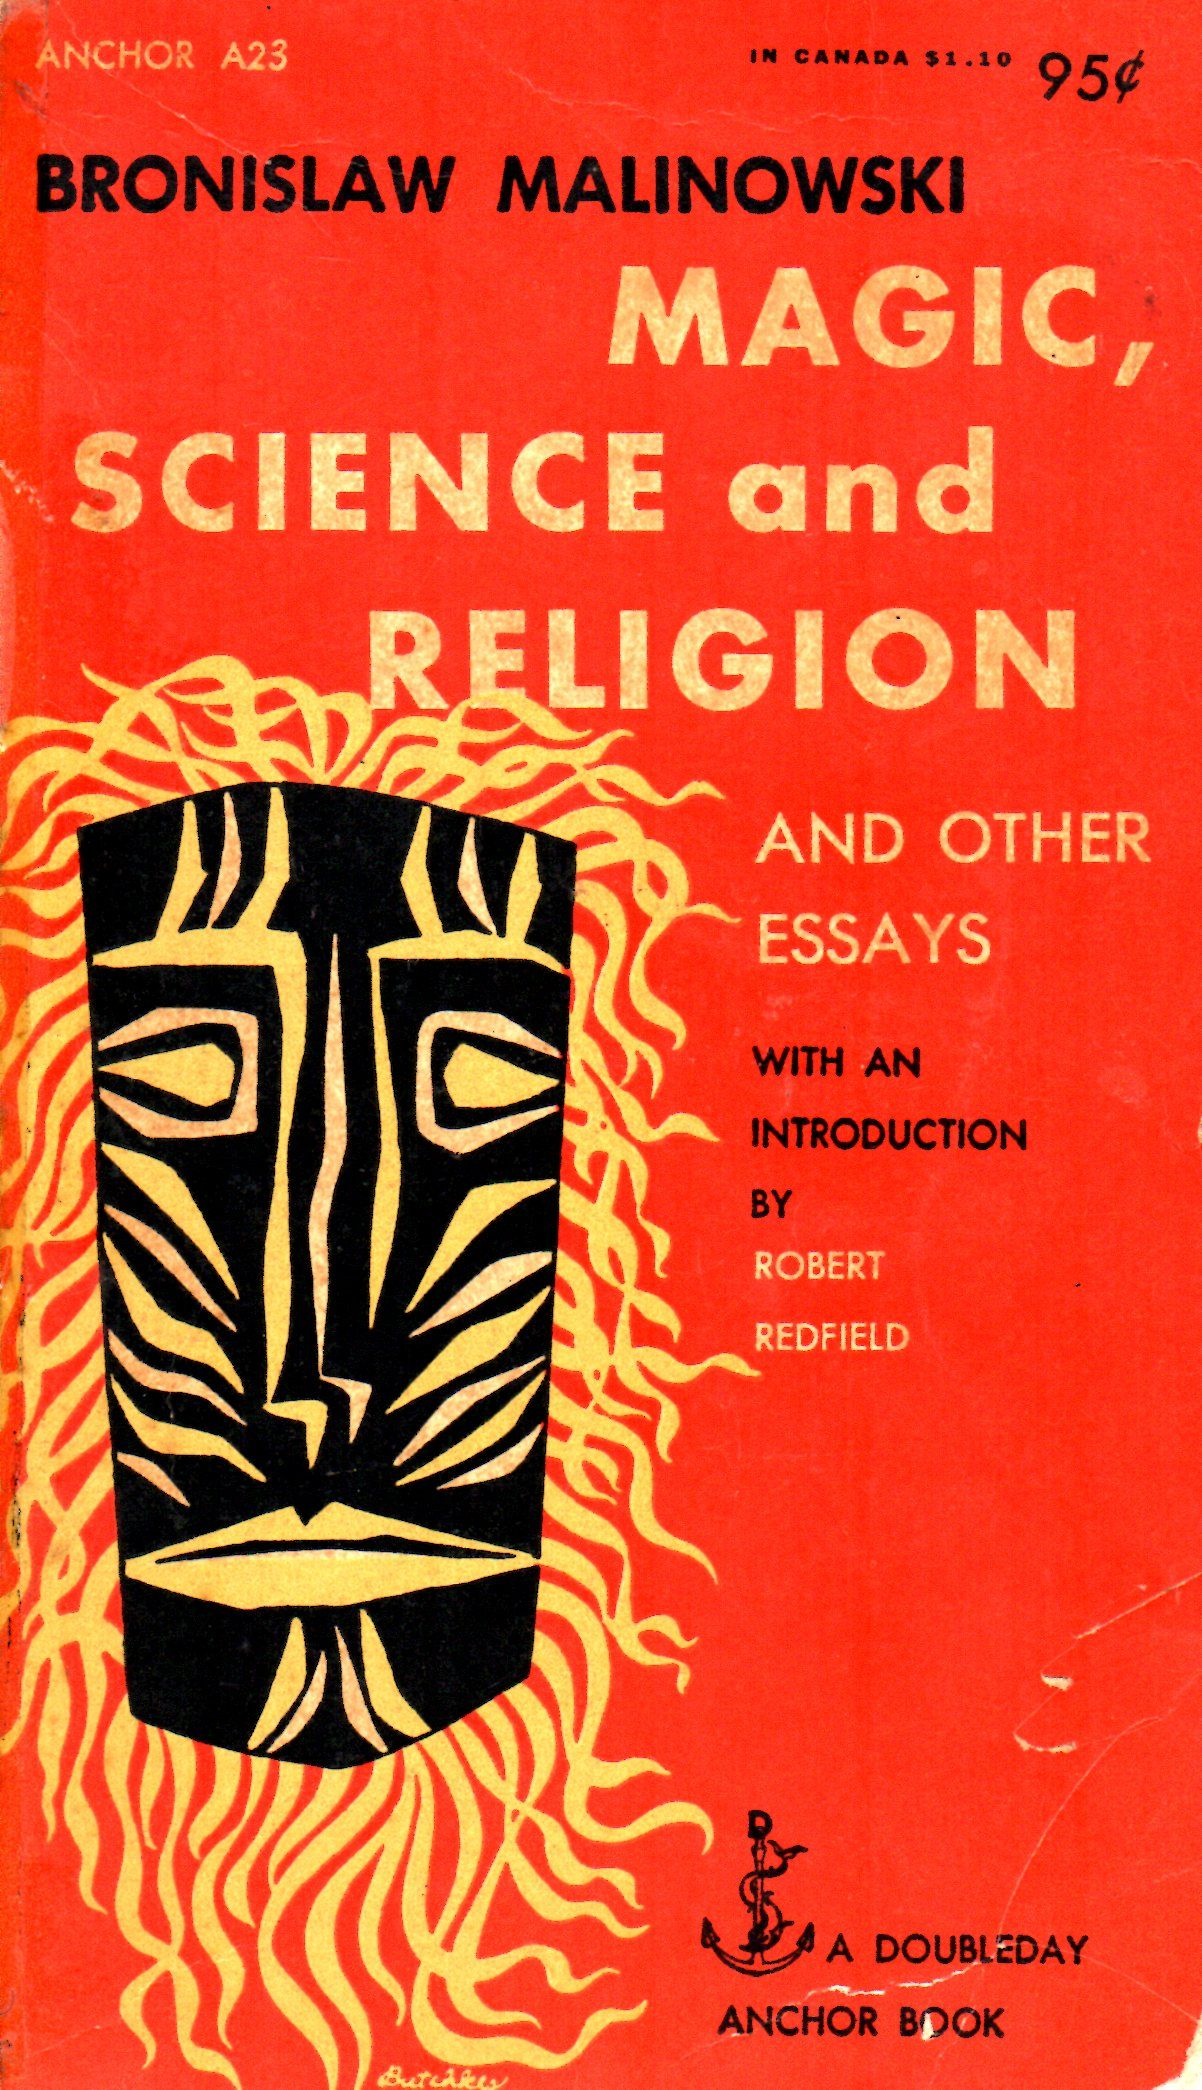 Magic Science And Religion And Other Essays  By Bronislaw  Magic Science And Religion And Other Essays  By Bronislaw Malinowski   With An Introduction By Robert Redfielddoubleday   Gn  M